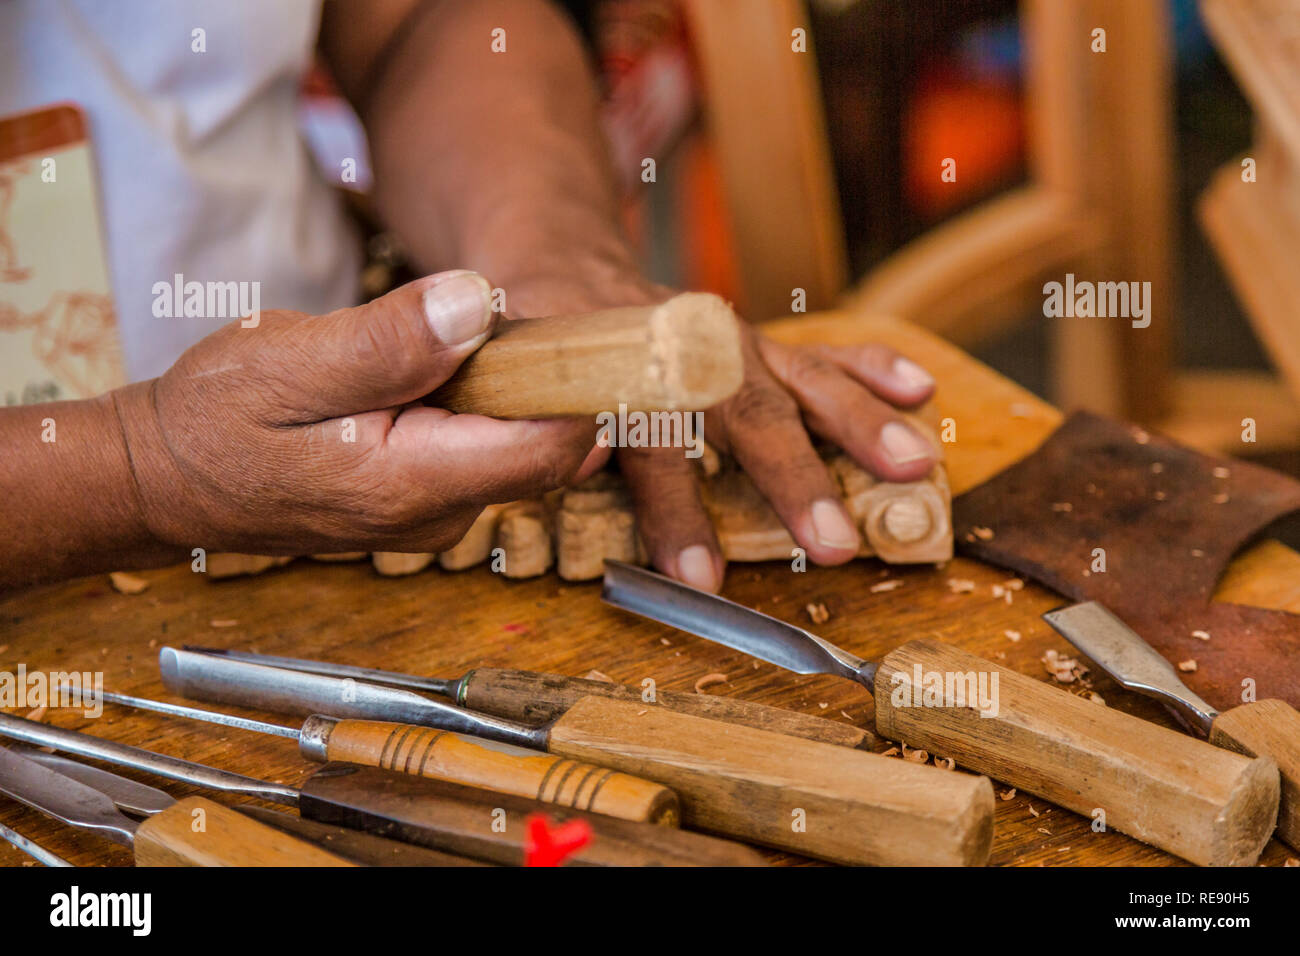 Chip carving stock photos & chip carving stock images alamy